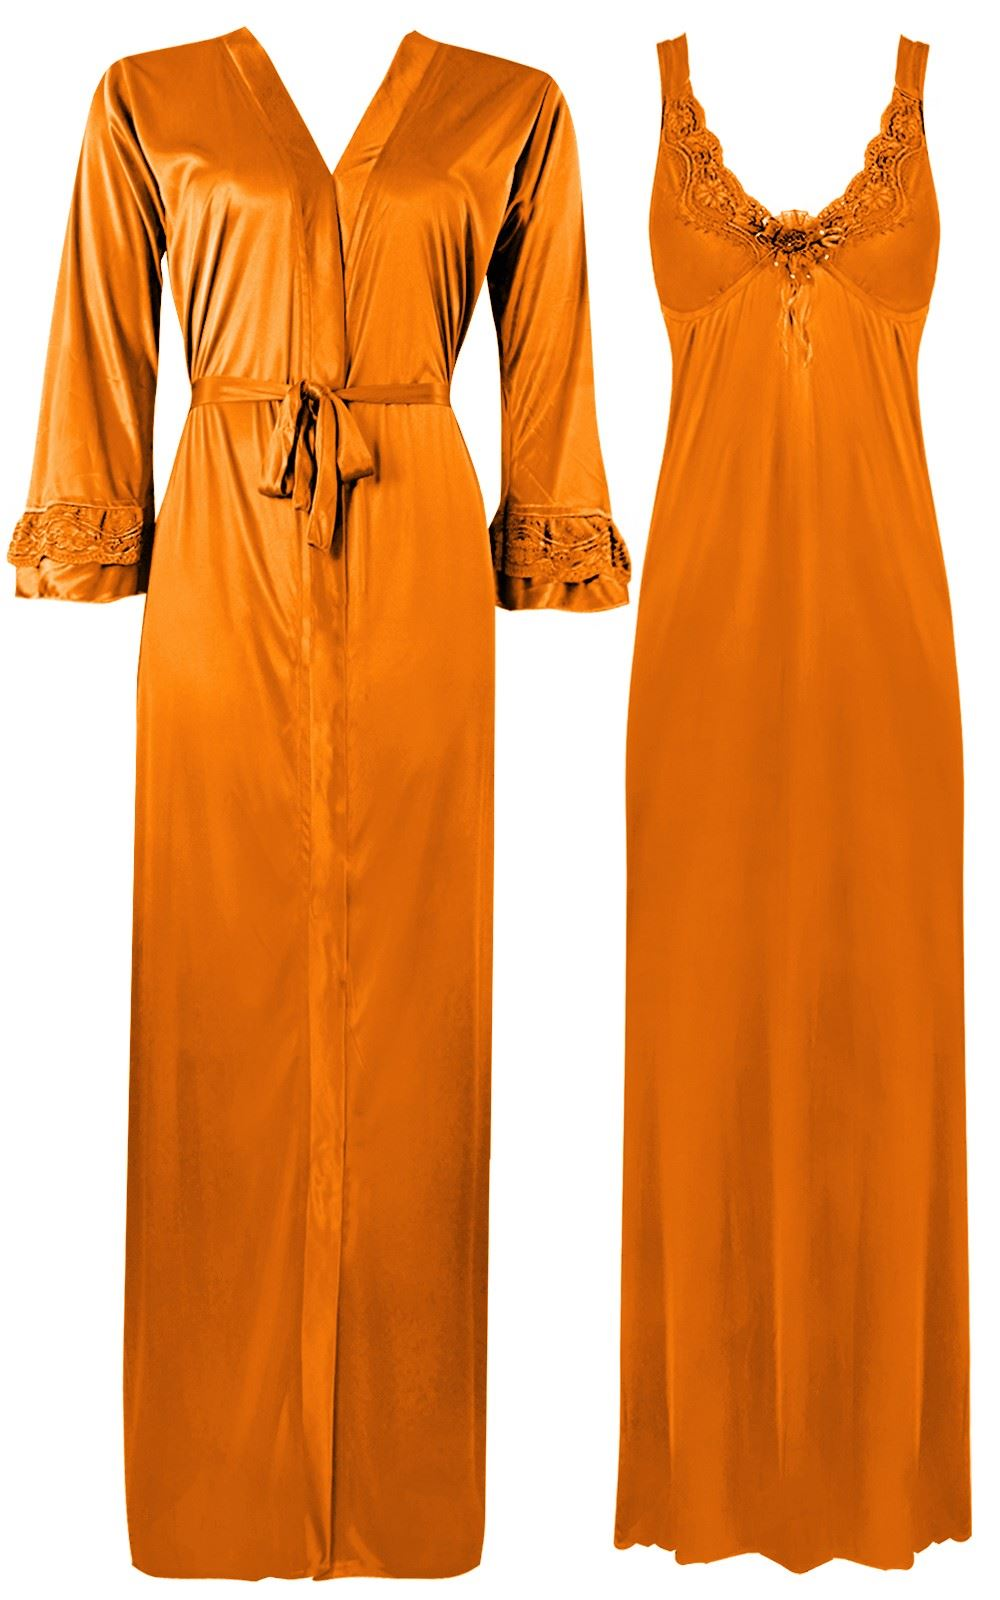 Color: Orange 2 Piece Satin Nighty and Robe With Long Sleeve Dressing Gown Size: XL